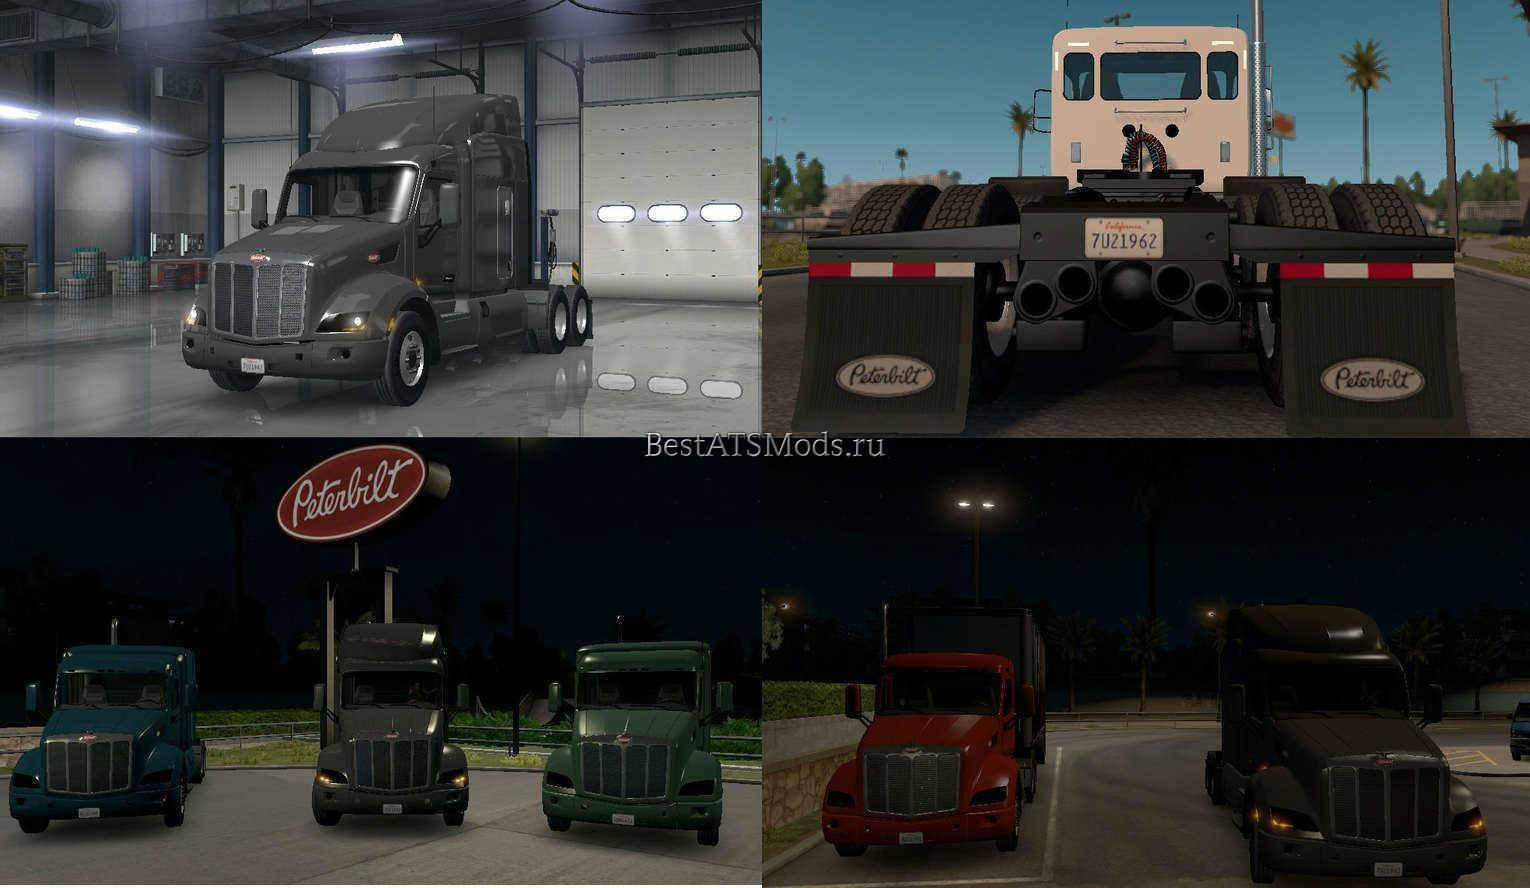 rsz_Мод_черные_тонированные_фары_peterbilt_579_black_headlights_toning_mod_american_truck_simulator